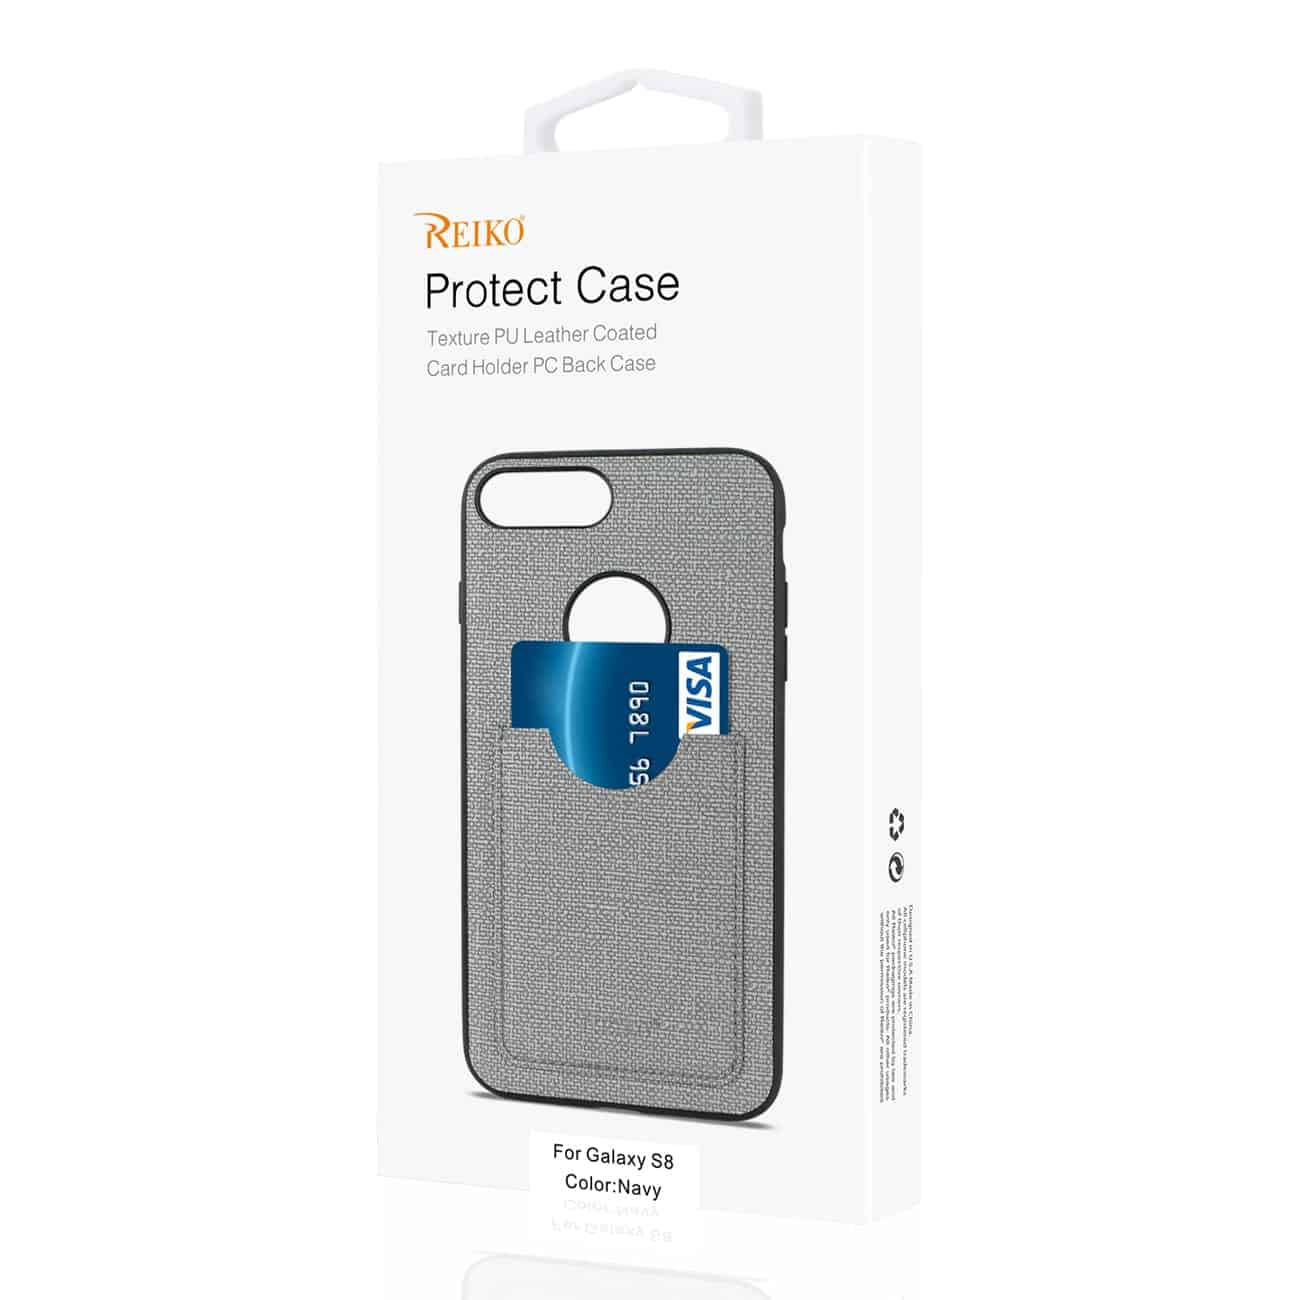 SAMSUNG GALAXY S8/ SM ANTI-SLIP TEXTURE PROTECTOR COVER WITH CARD SLOT IN NAVY